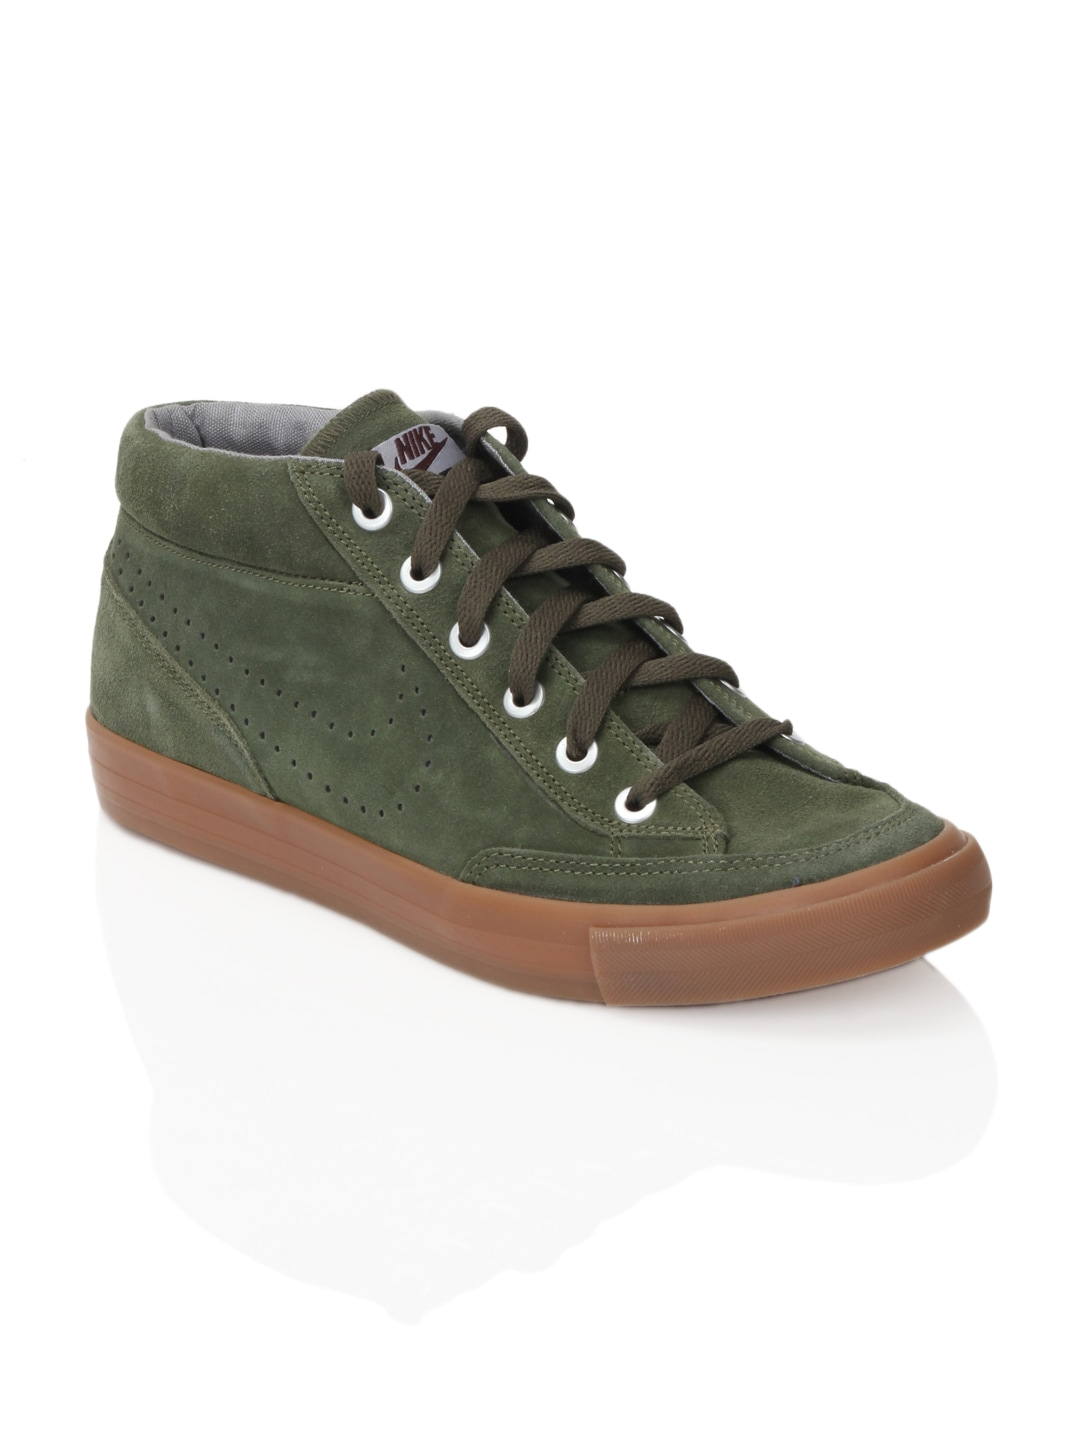 bruscamente Campanilla vulgar  Nike 487335-326 Men Chukka Go Suede Green Shoes - Best Price ...